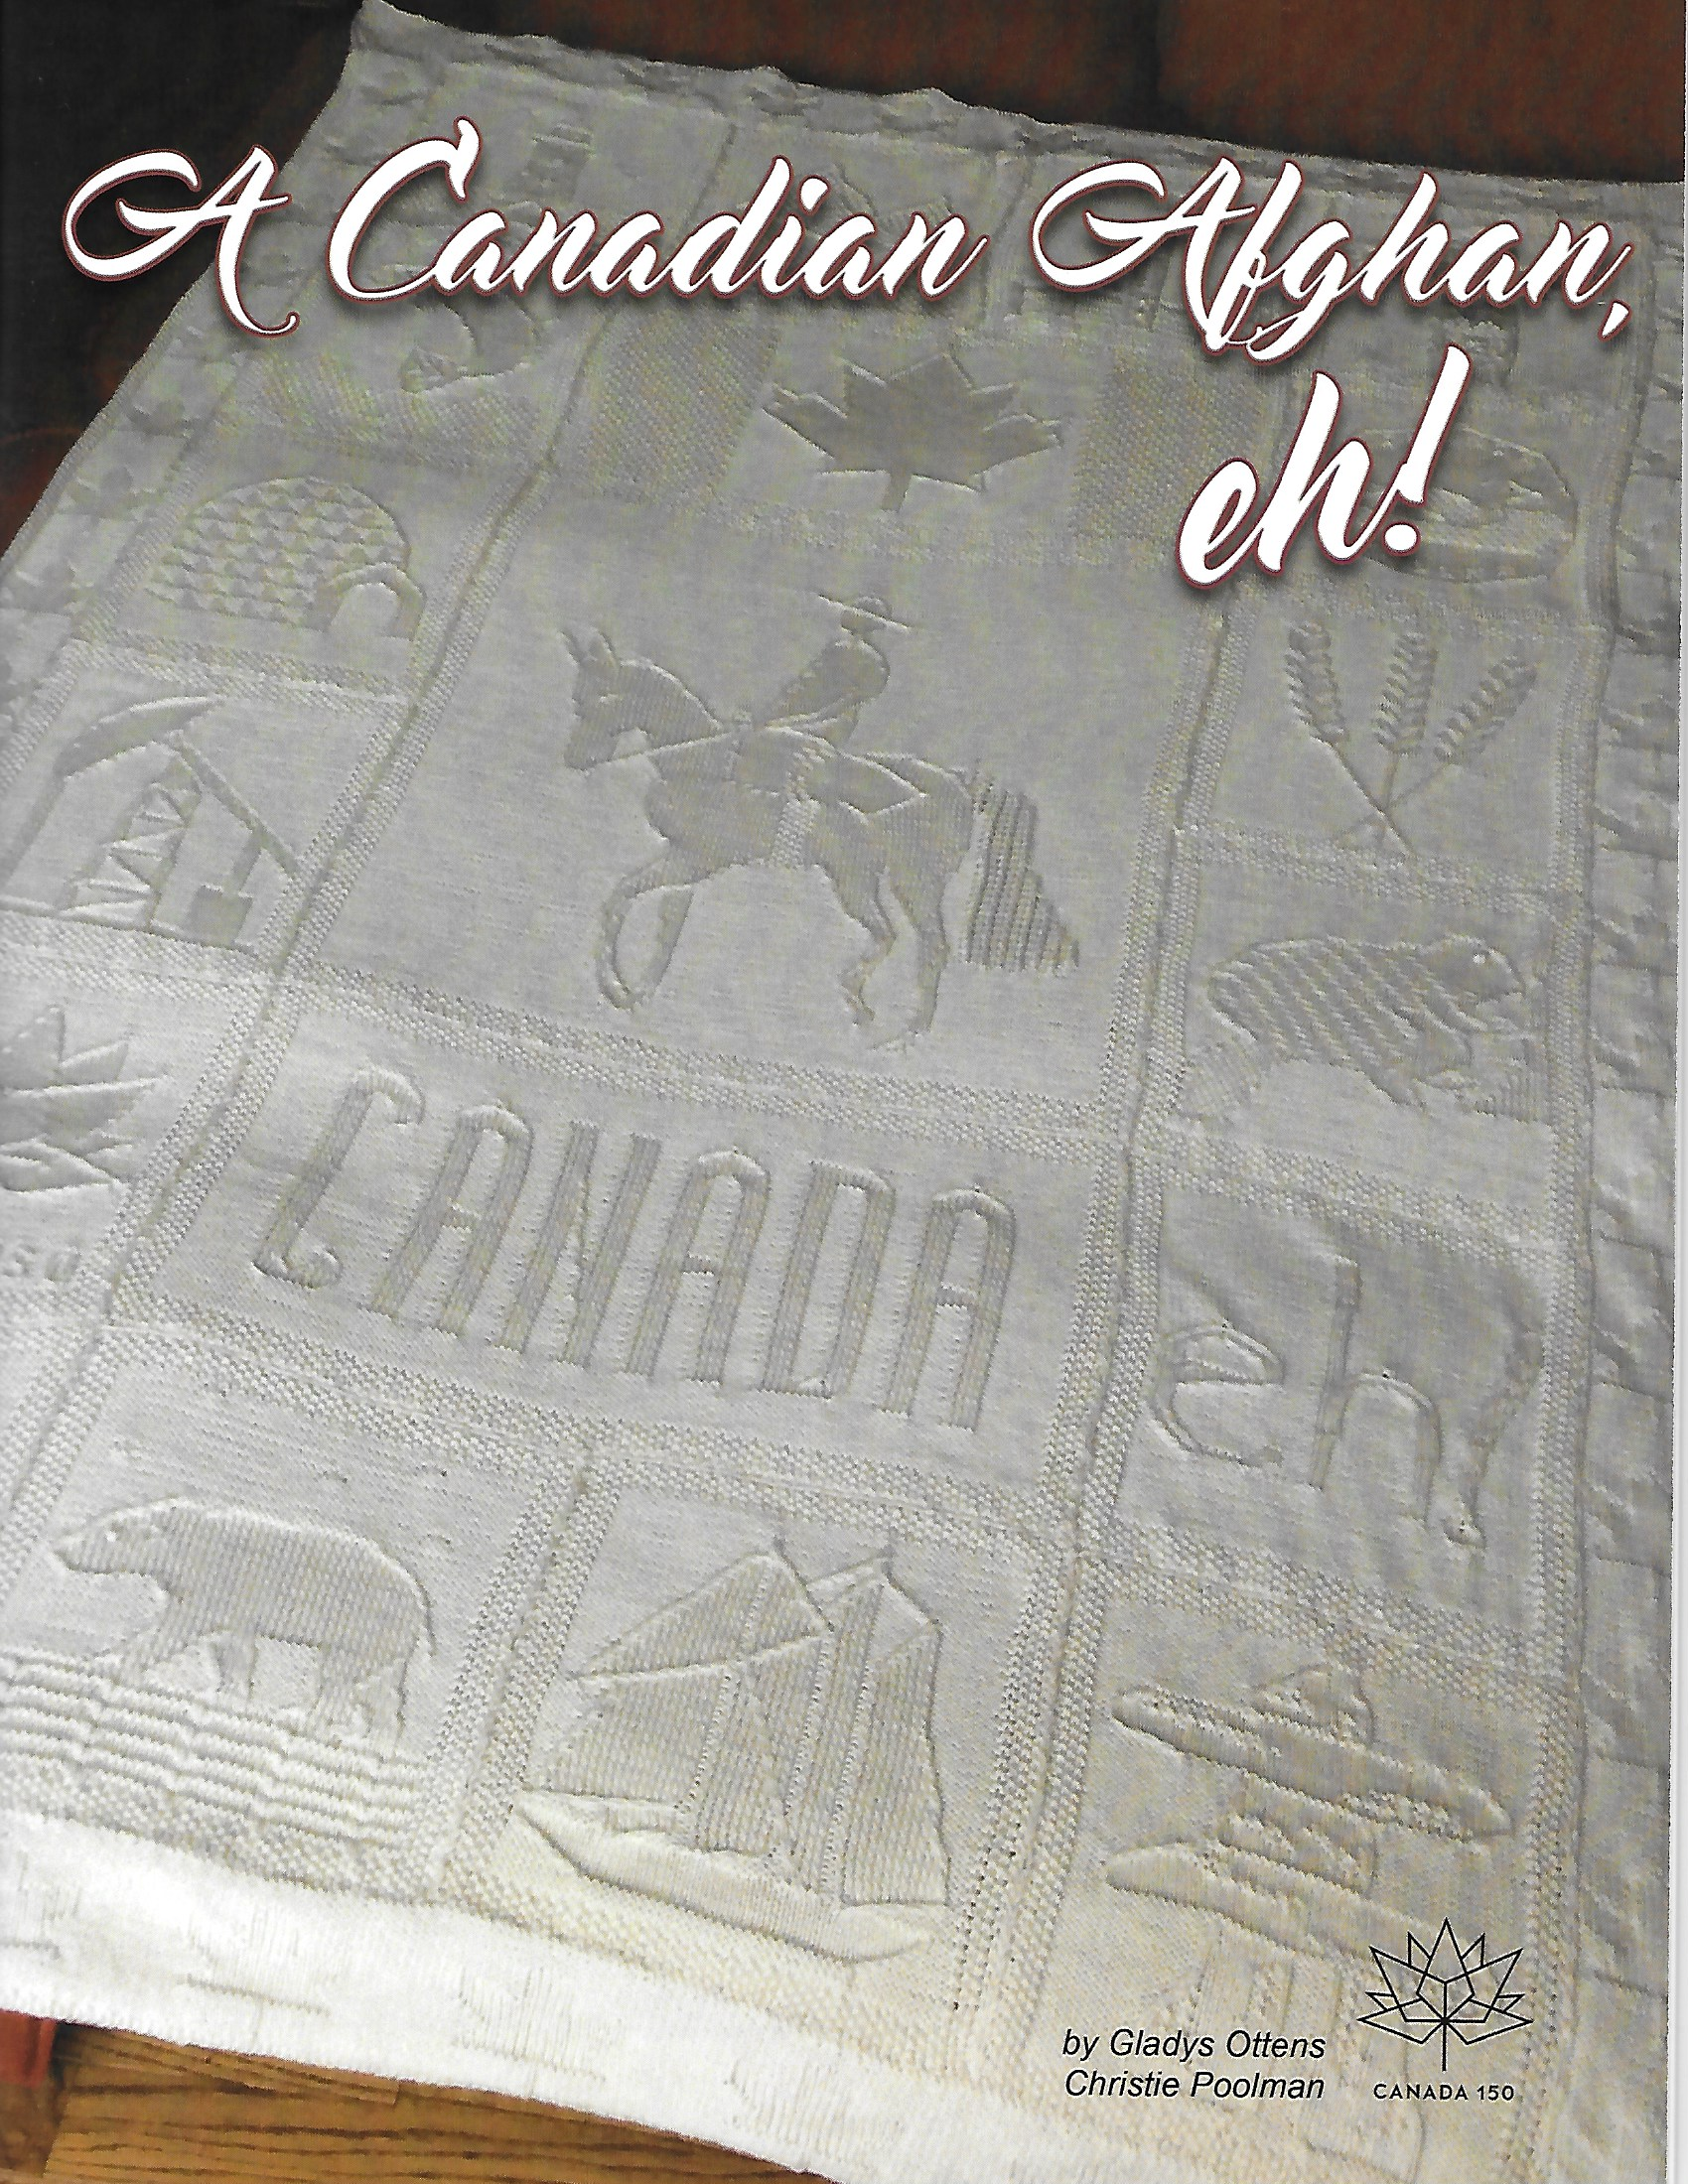 A Canadian Afghan, eh! By Gladys Otten & Christie Poolman